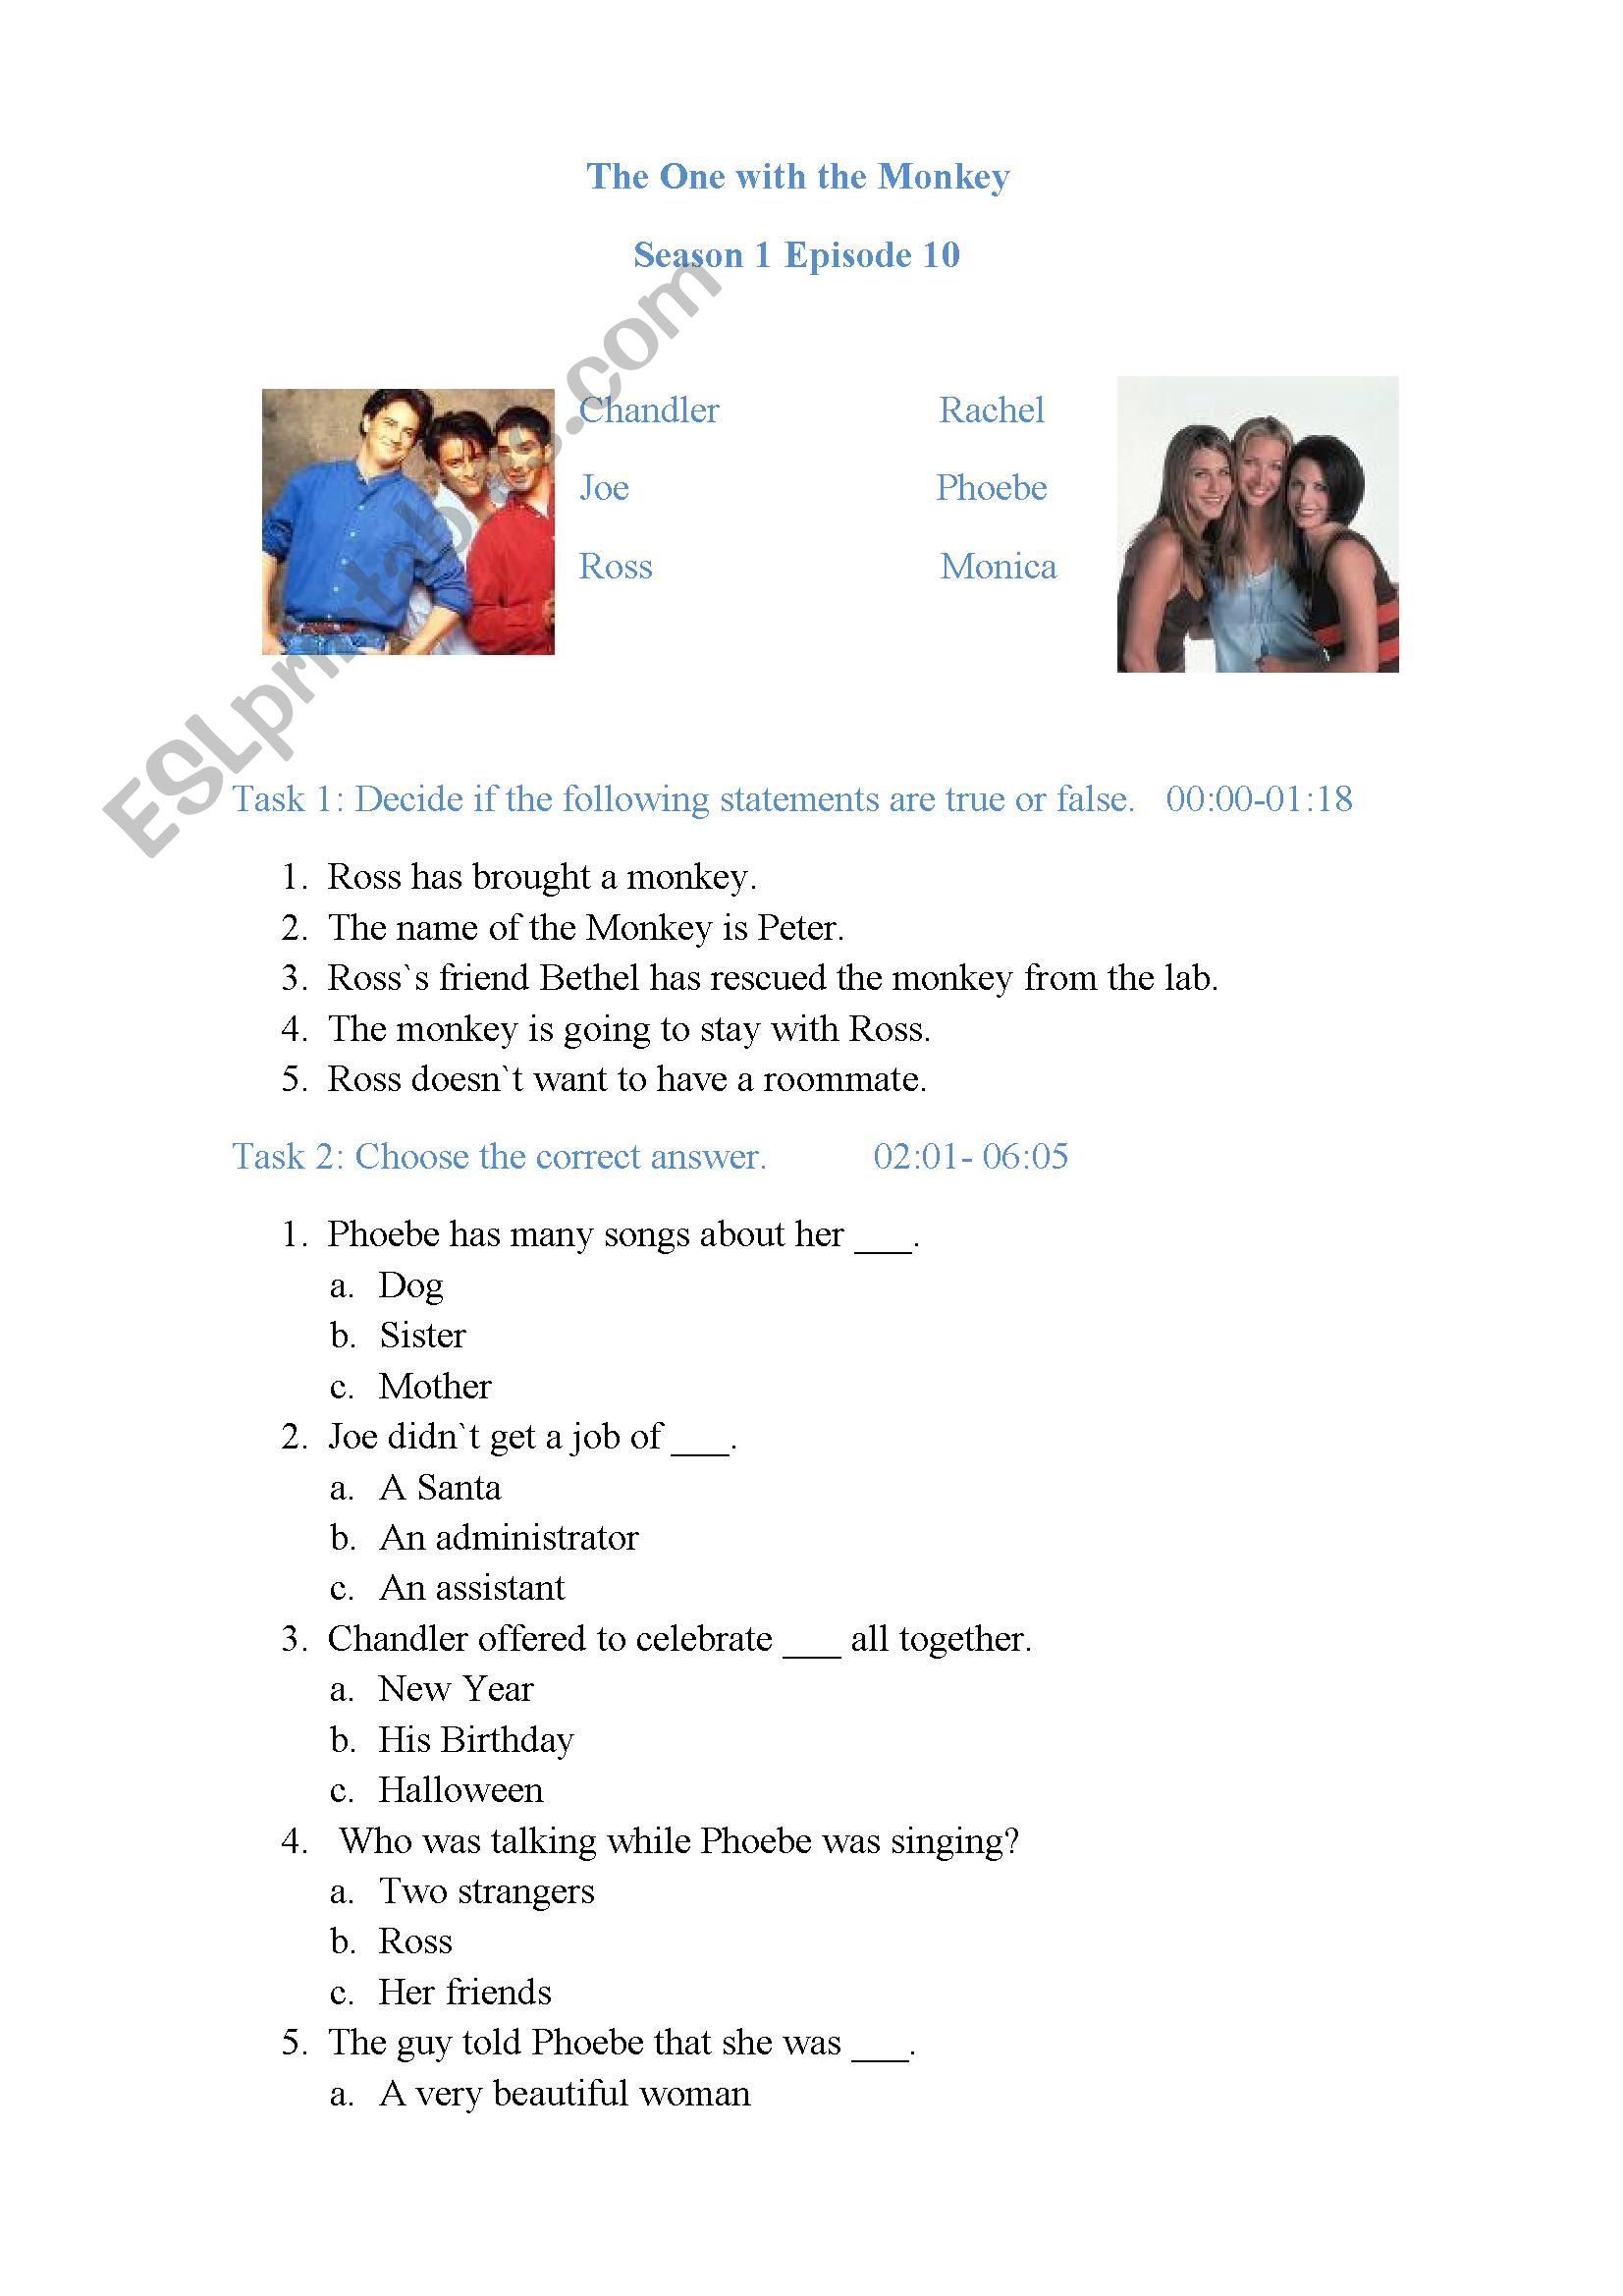 Friends Season 1 Episode 10 - ESL worksheet by YulikaTinkie